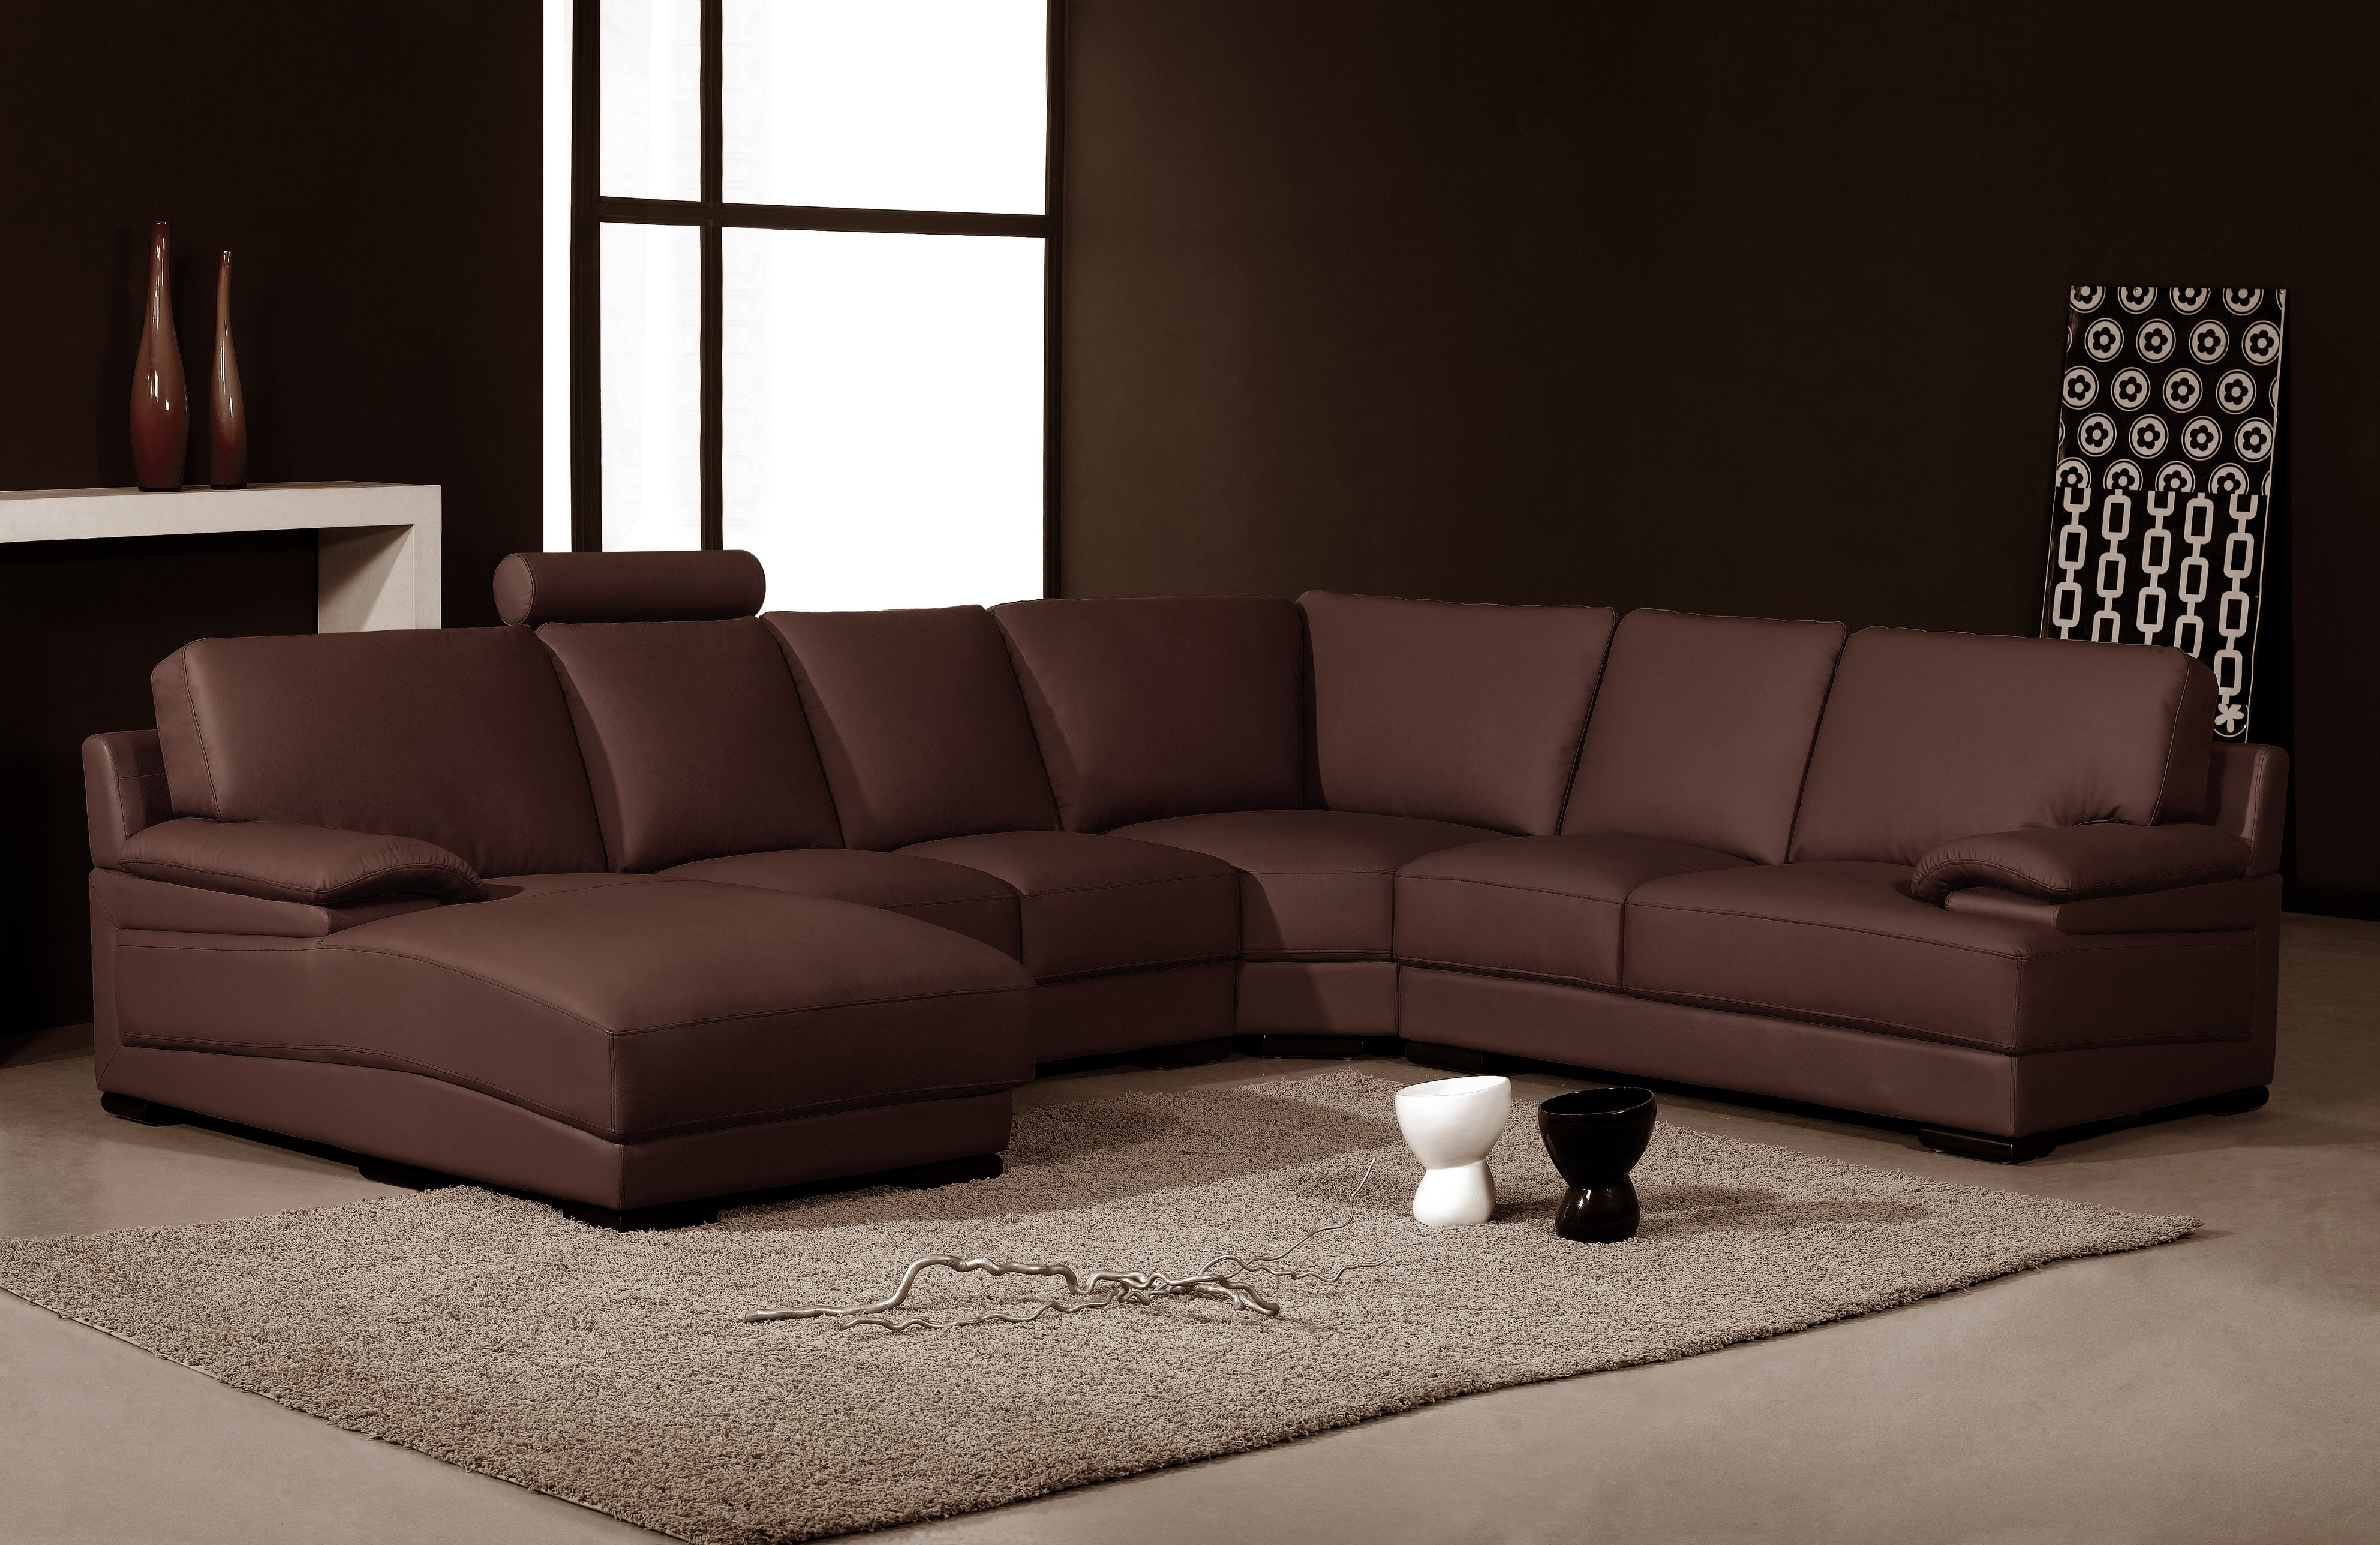 new sofa sectionals on sale construction-Terrific sofa Sectionals On Sale Décor